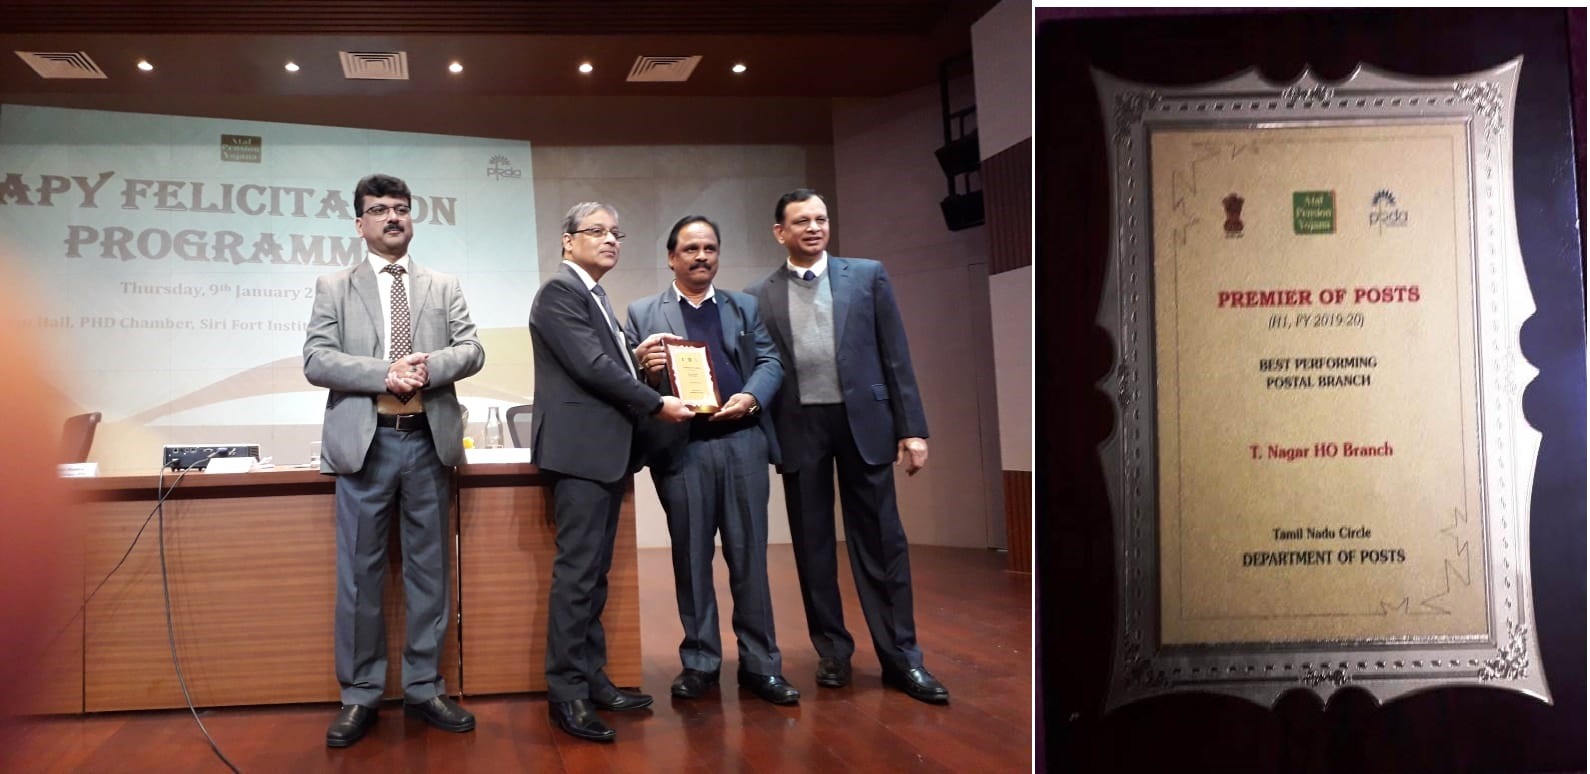 Chief Postmaster, Chennai GPO received an award 'Premier of Posts